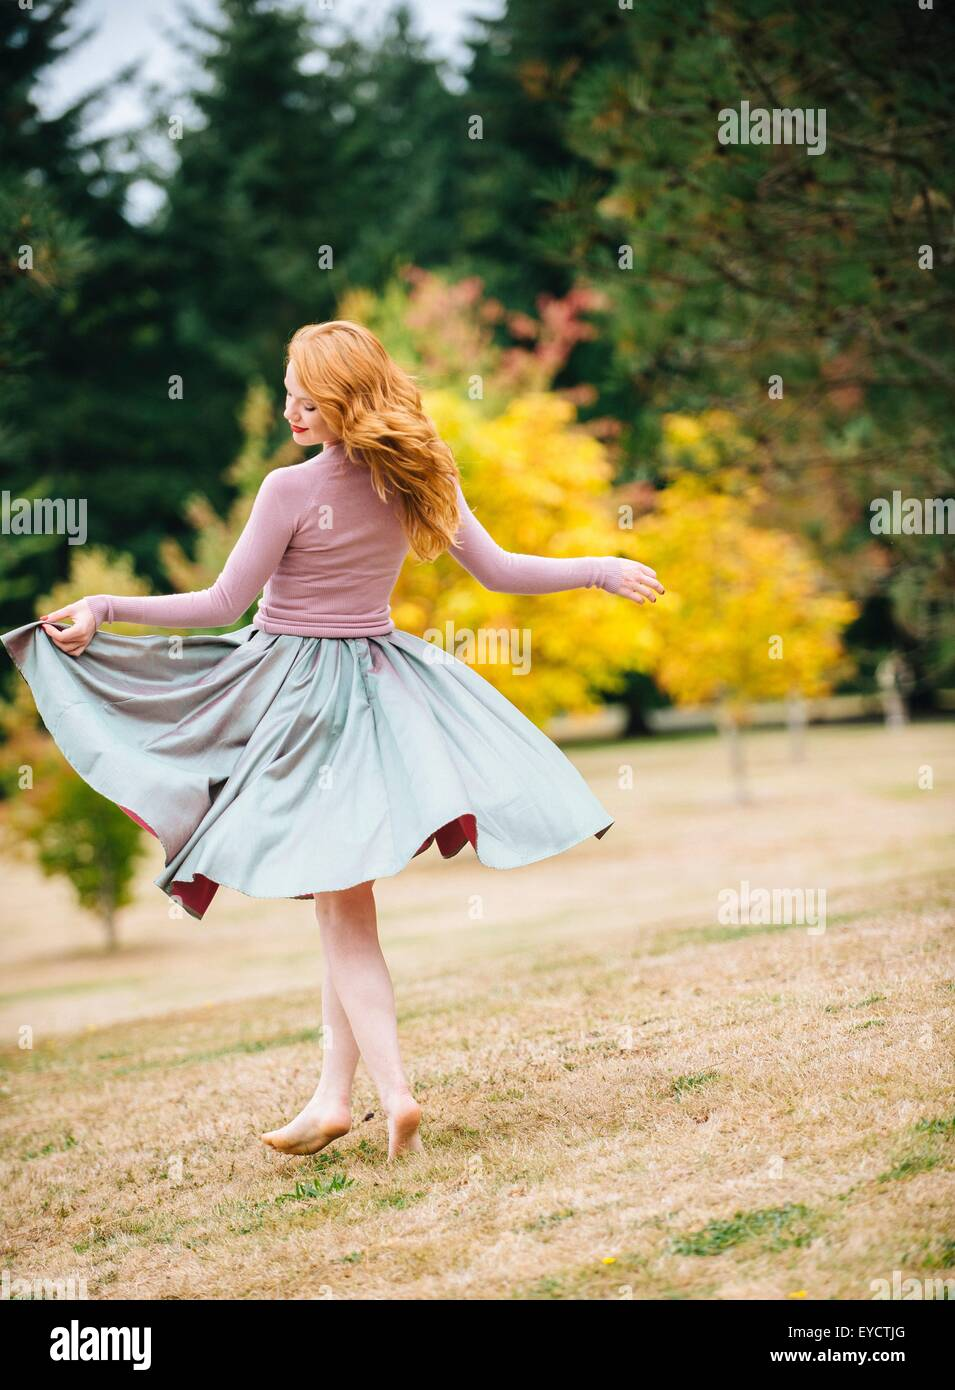 Young female dancer twirling and  lifting skirt in park - Stock Image